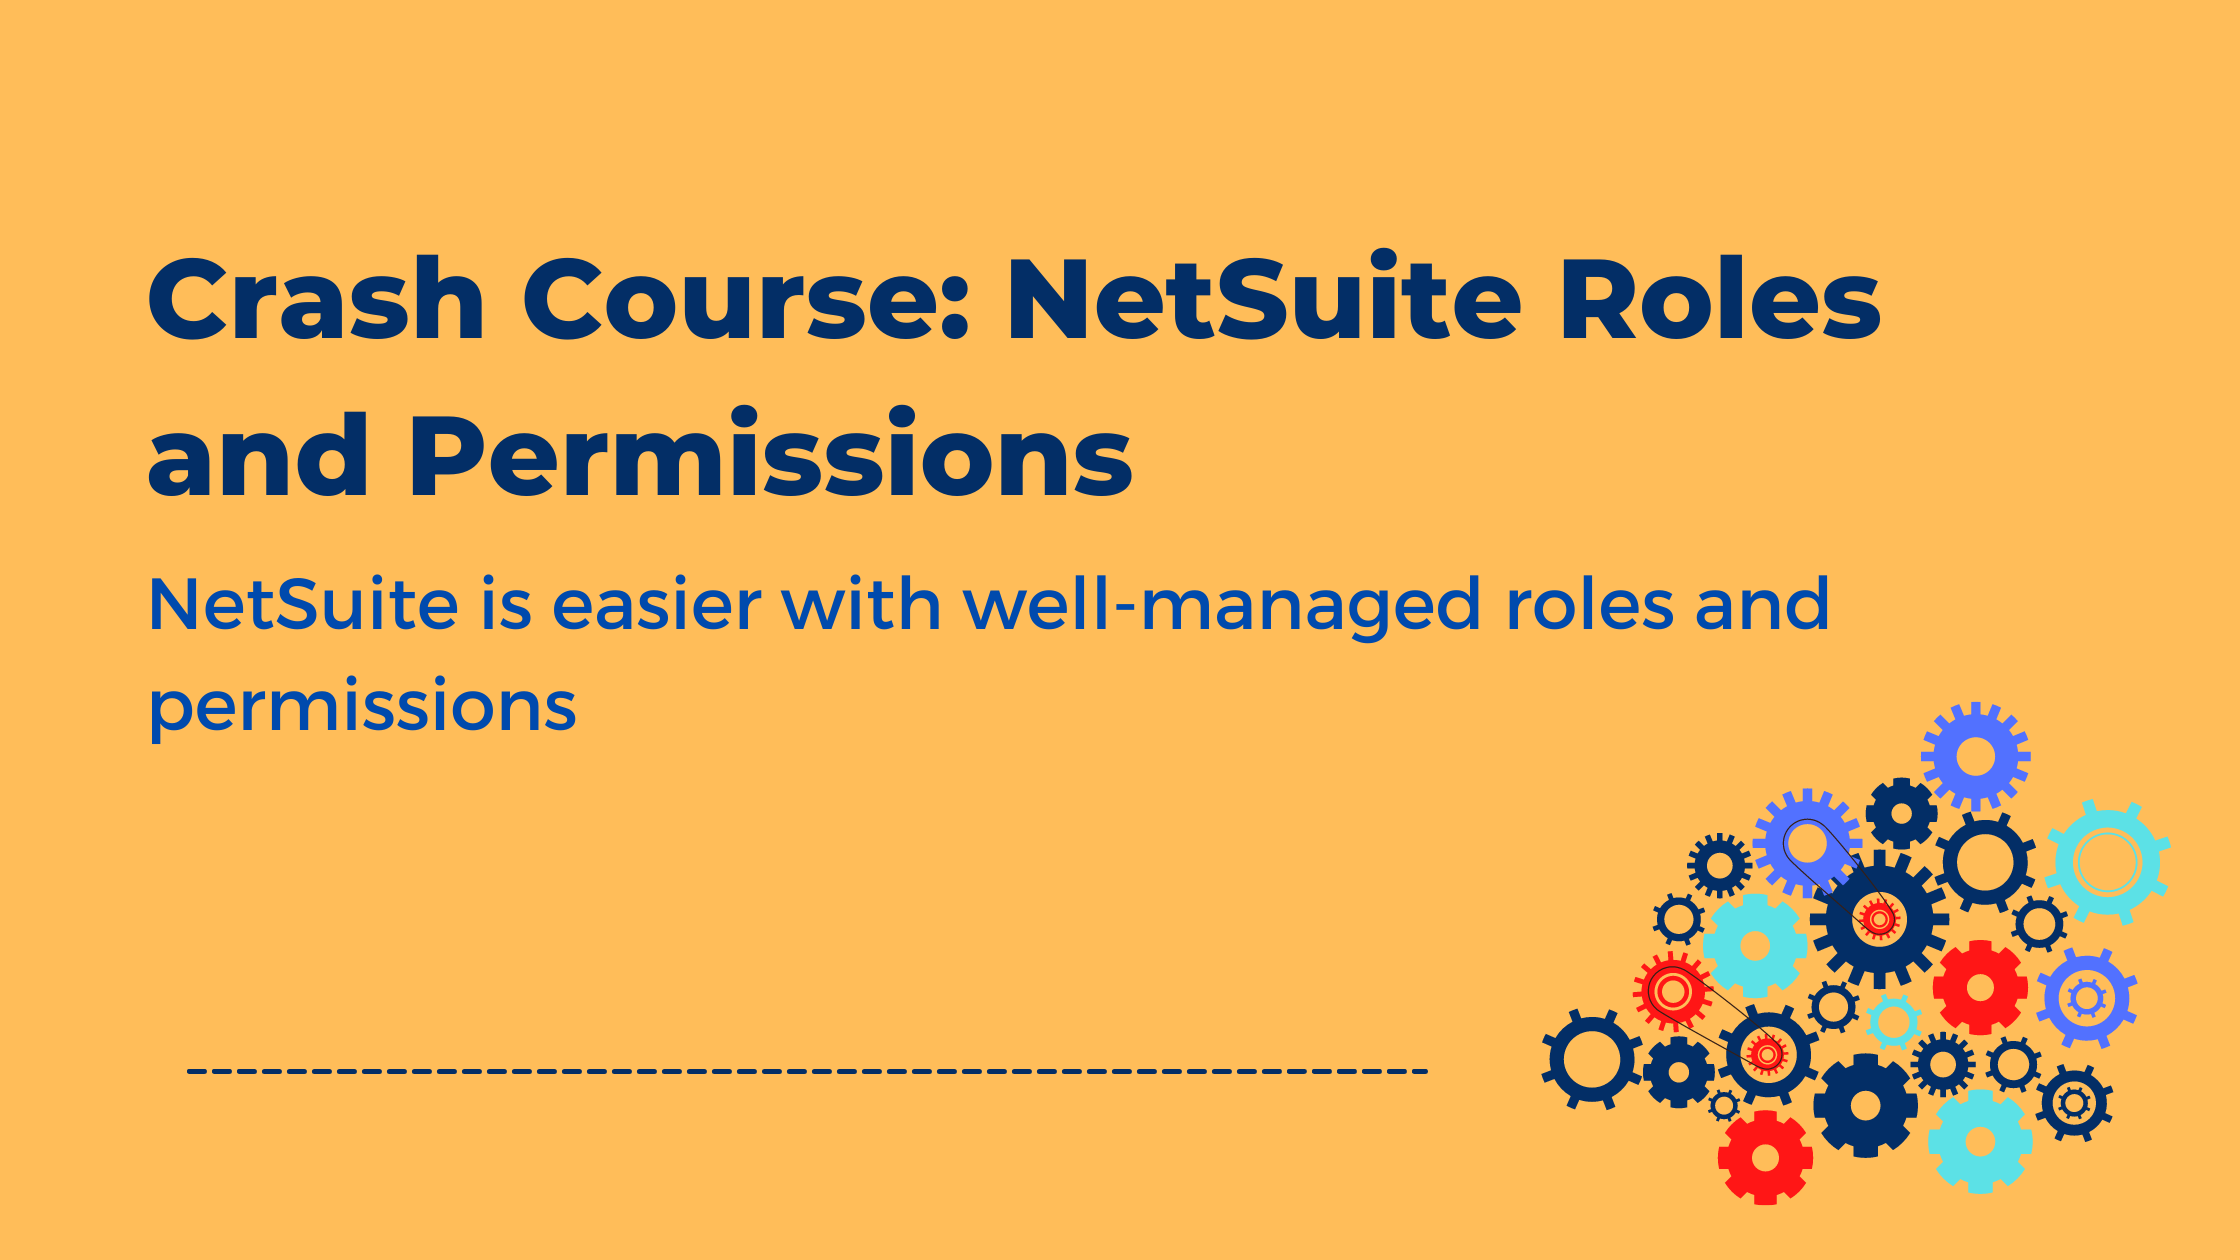 NetSuite Roles and Permissions